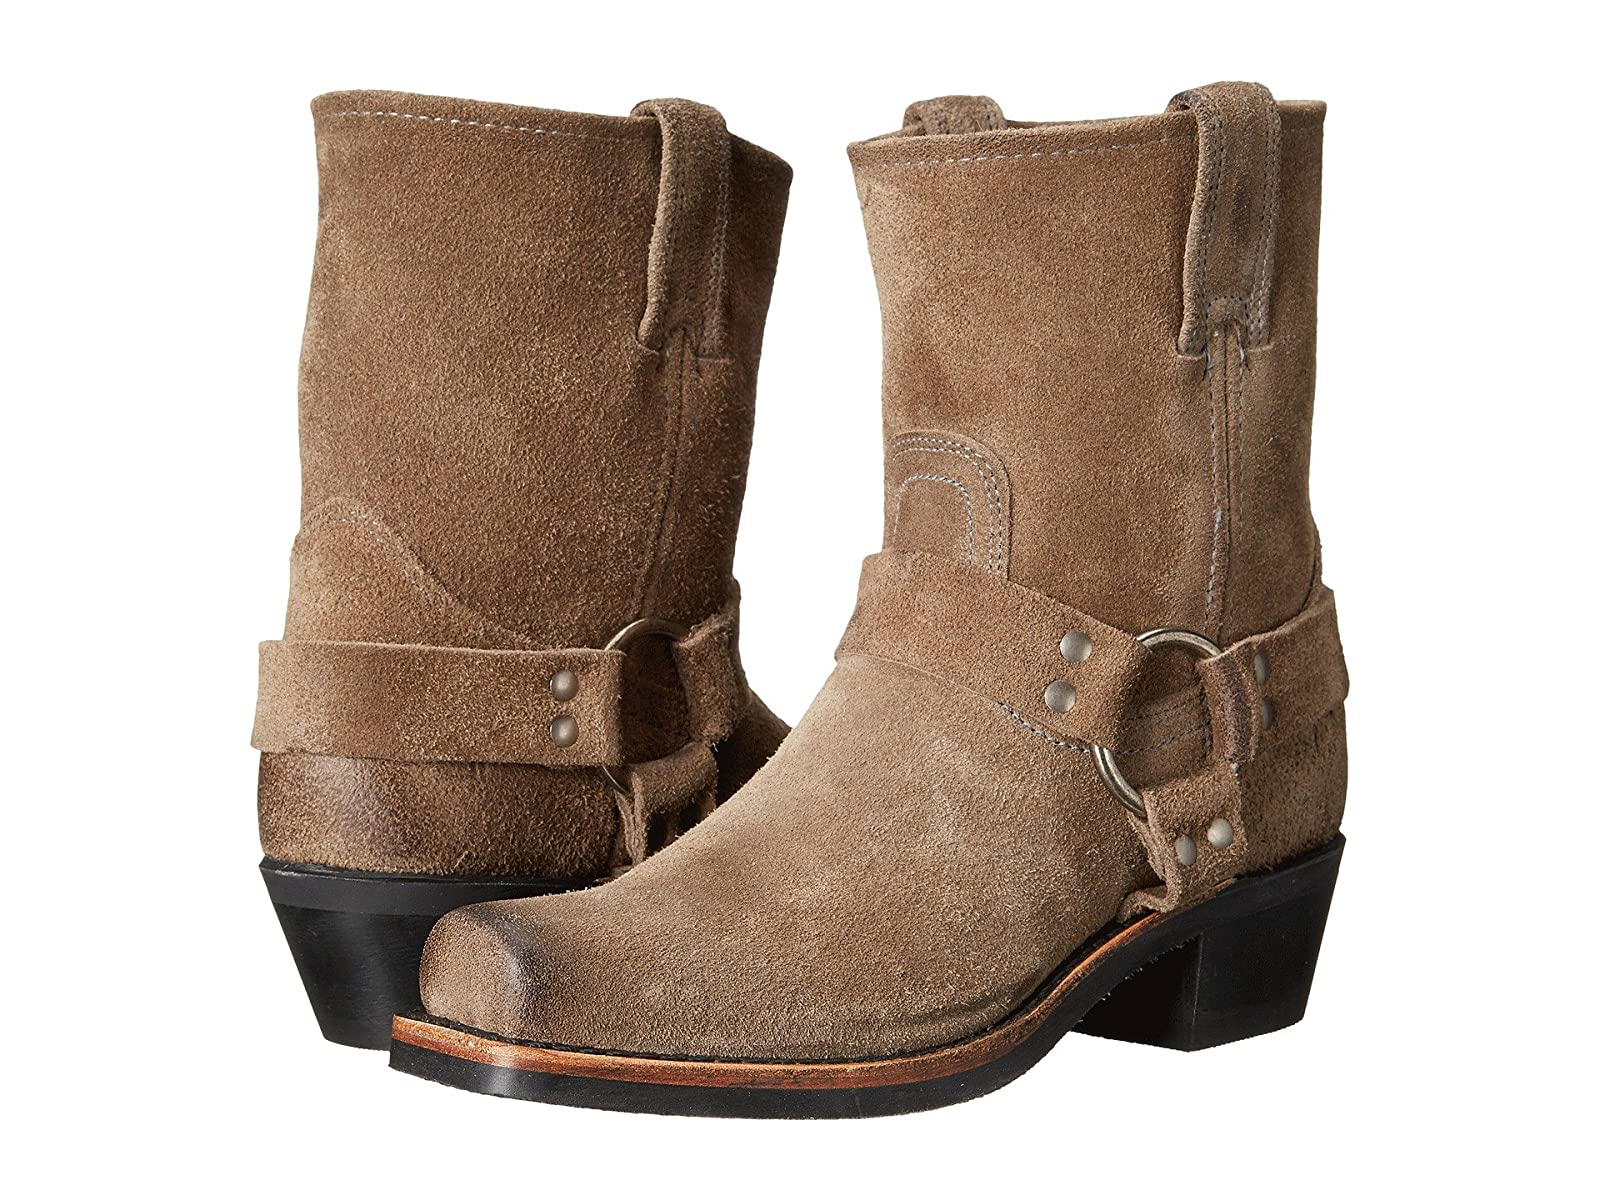 Frye Harness 8RCheap and distinctive eye-catching shoes